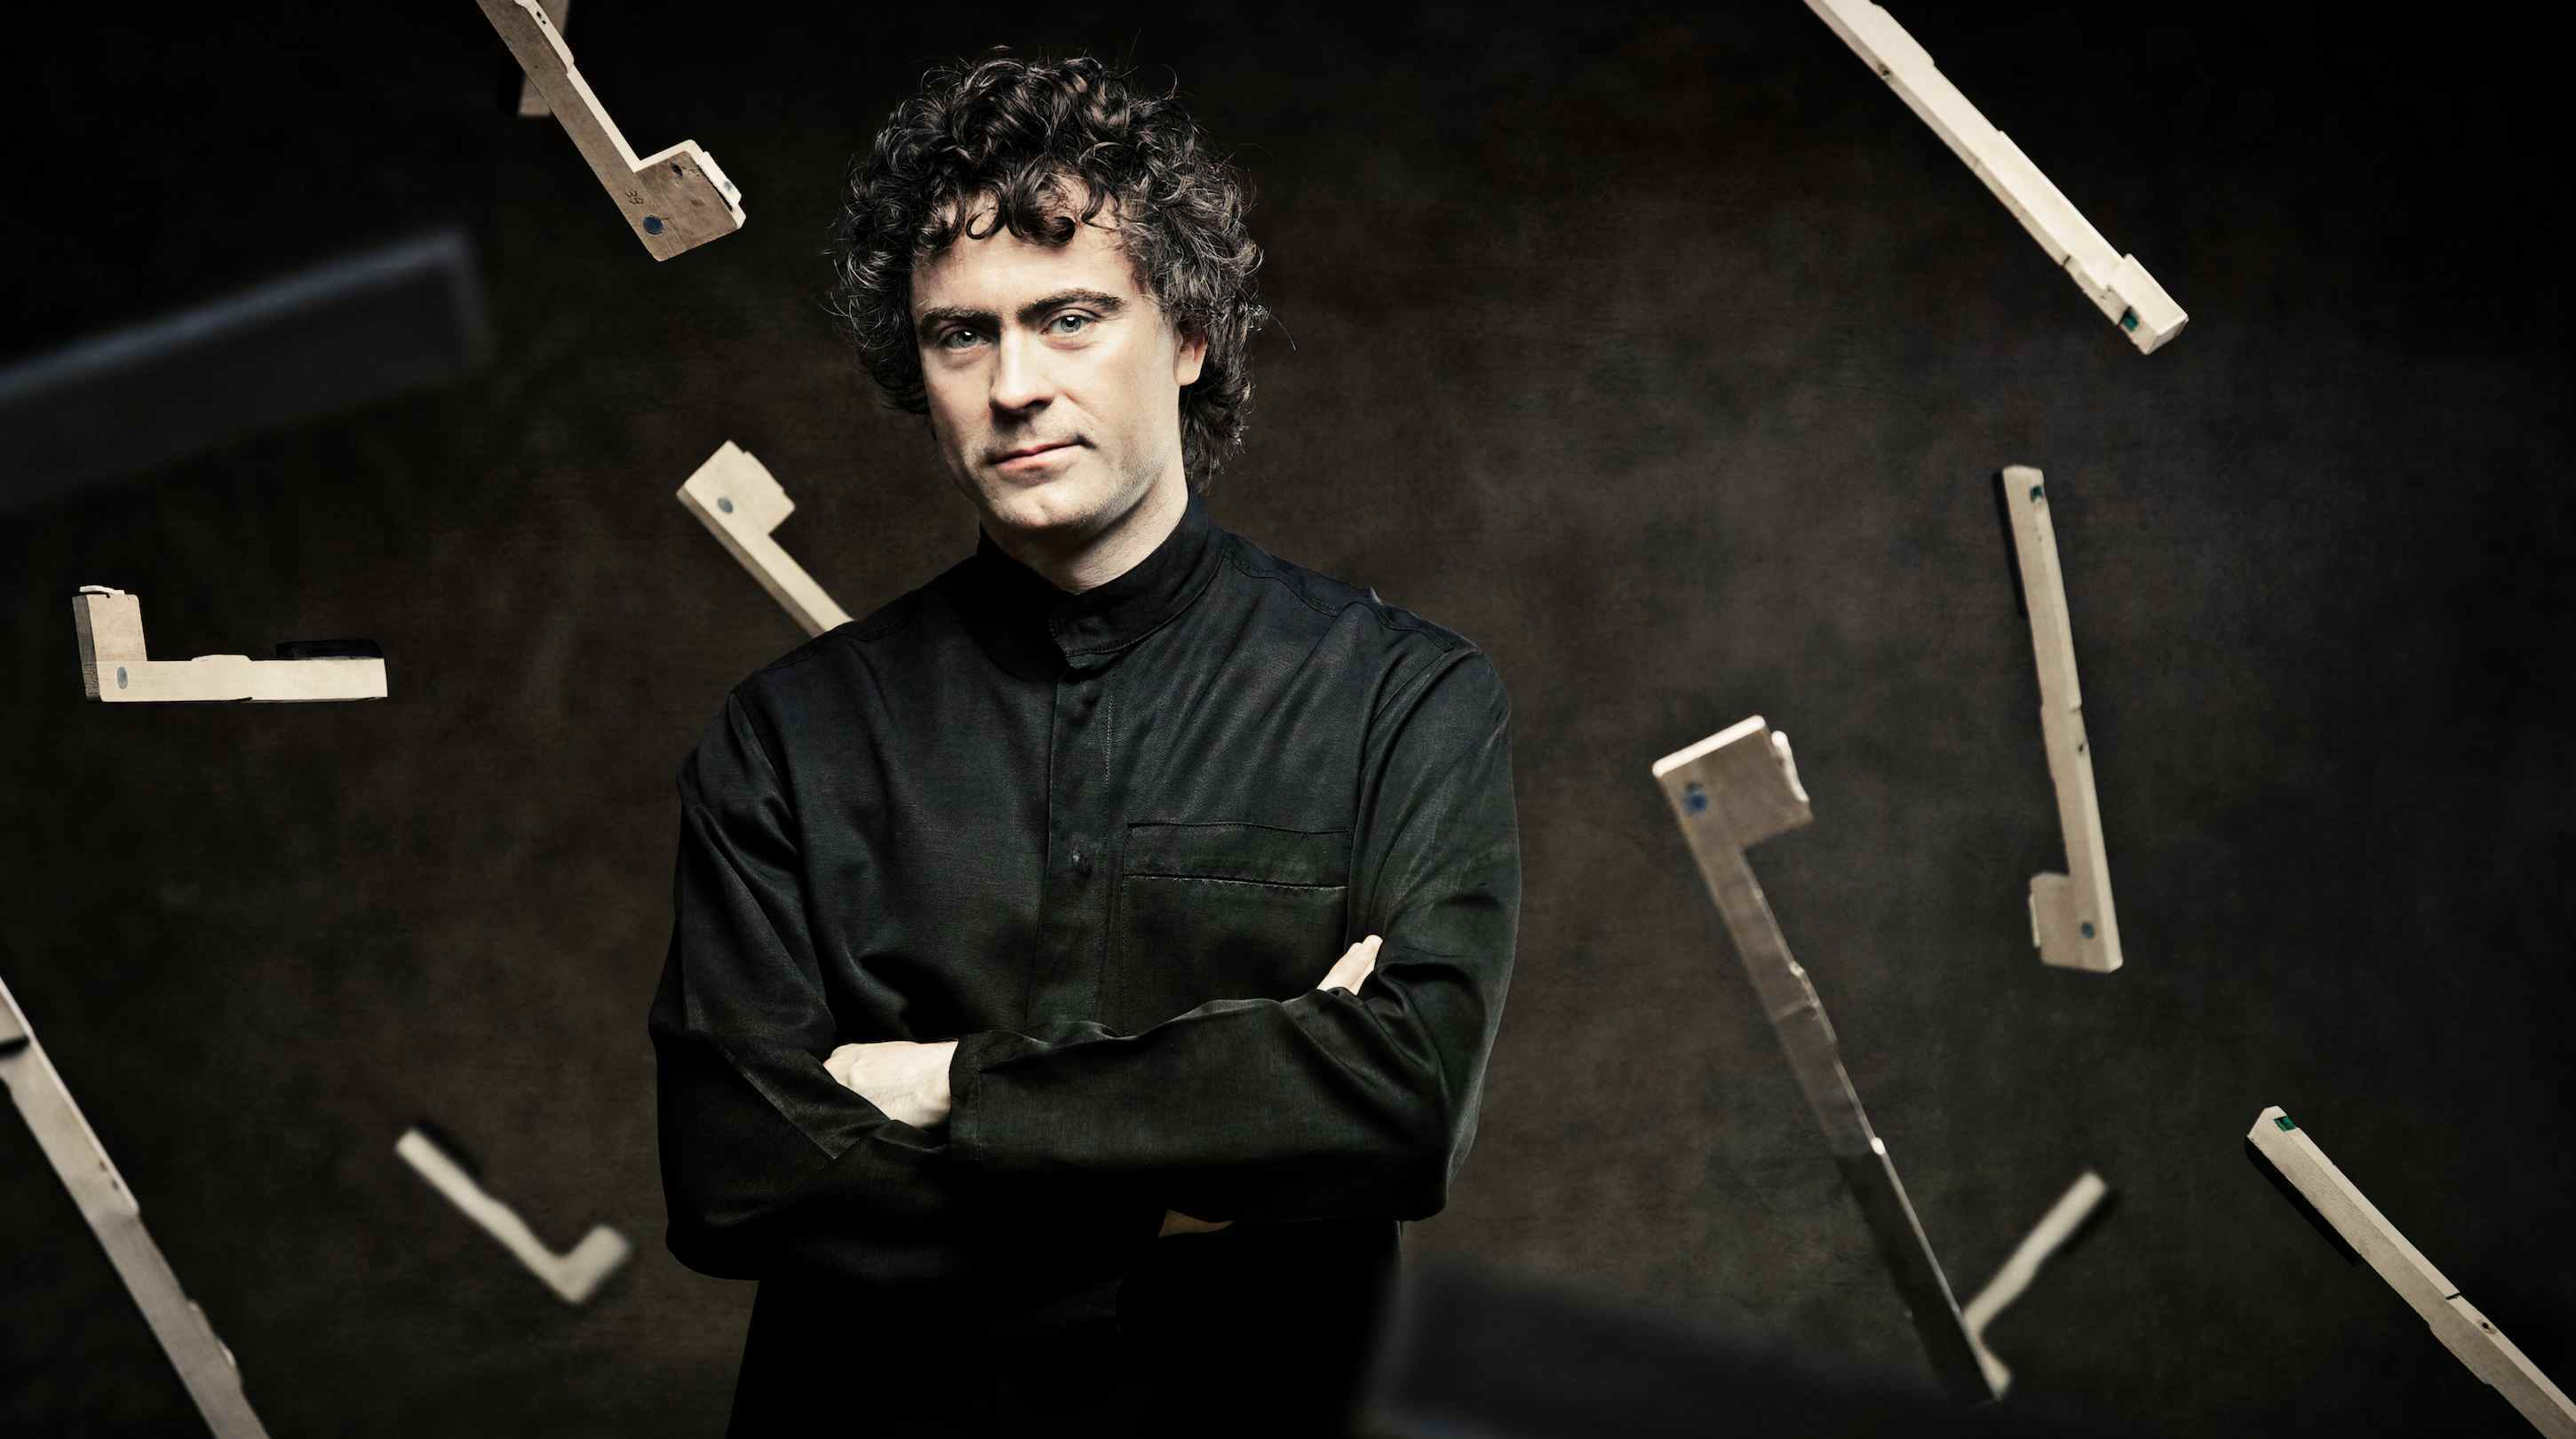 The Sorcerer's Apprentice <br/>Alfred Brendel and Paul Lewis <br/>Playing Schubert with no Middleman